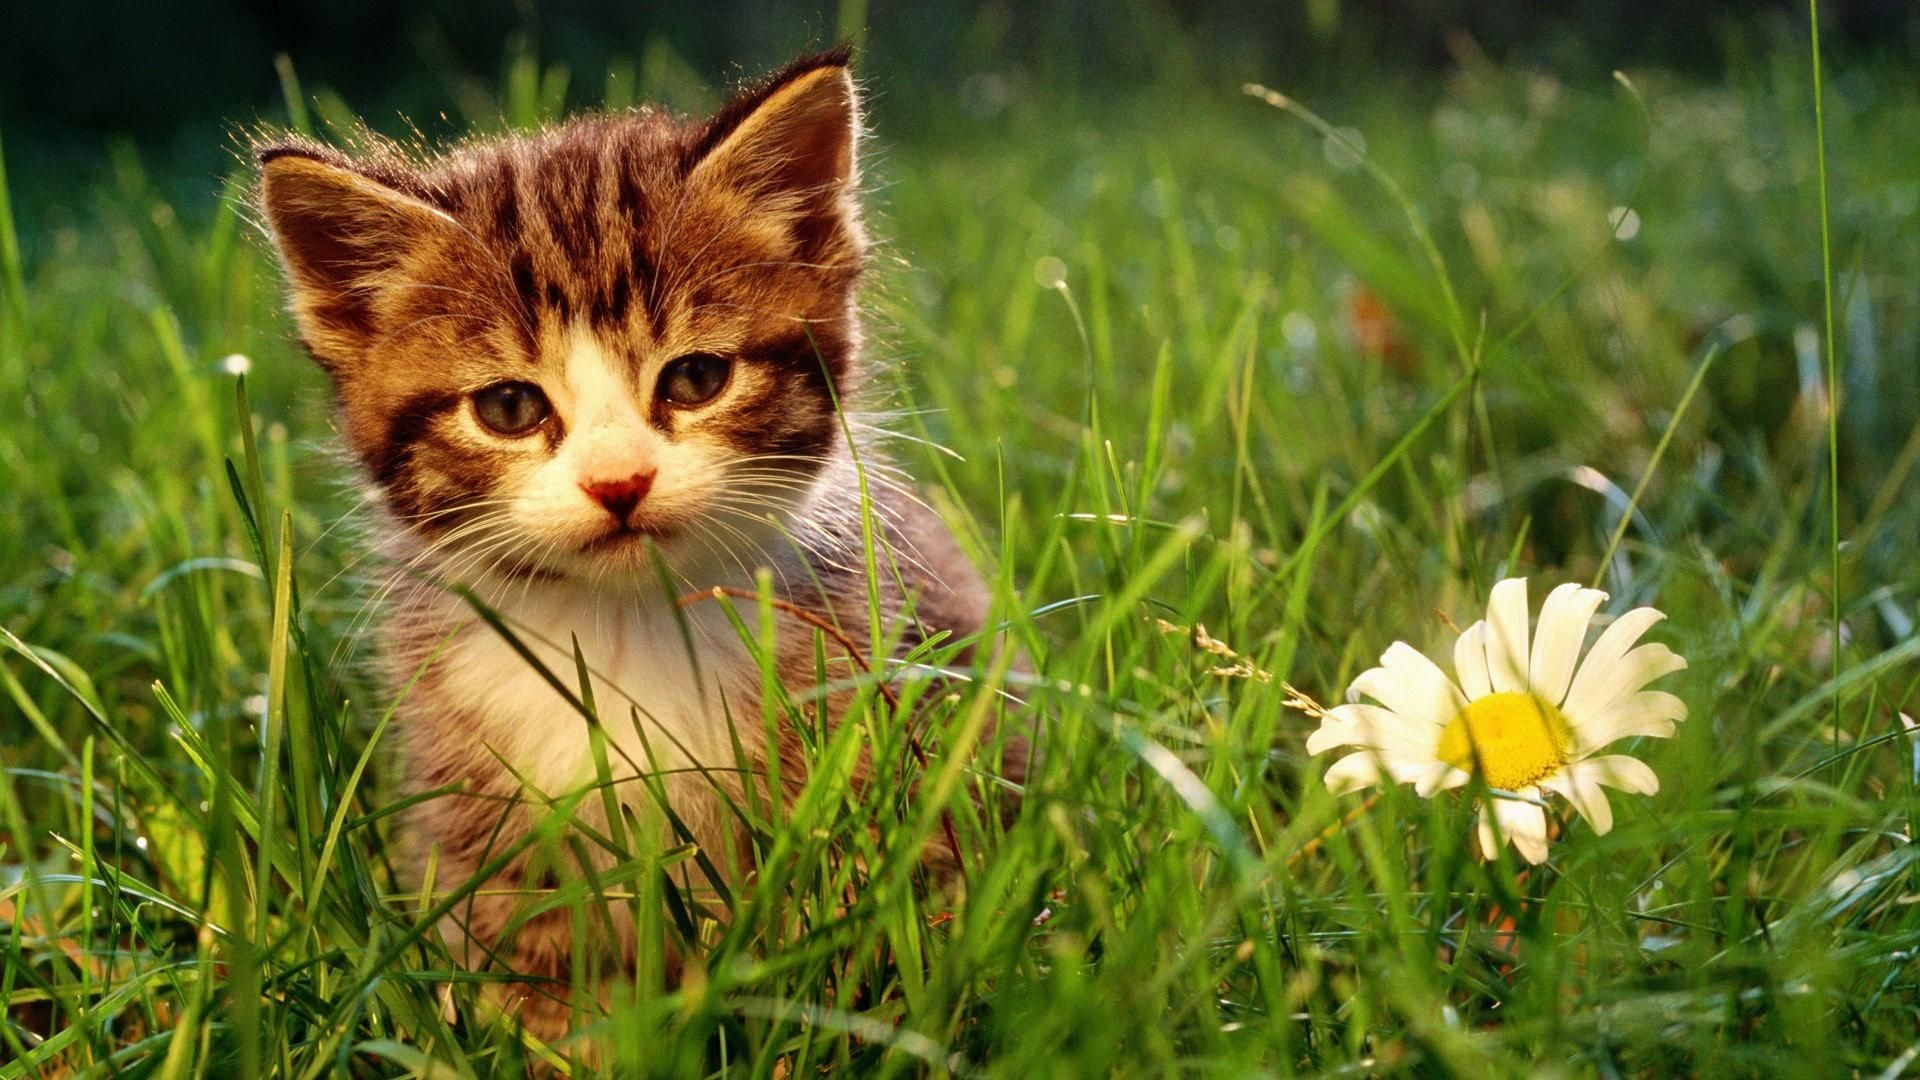 Res: 1920x1080, undefined Pictures Of Cute Kittens Wallpapers (68 Wallpapers)   Adorable  Wallpapers